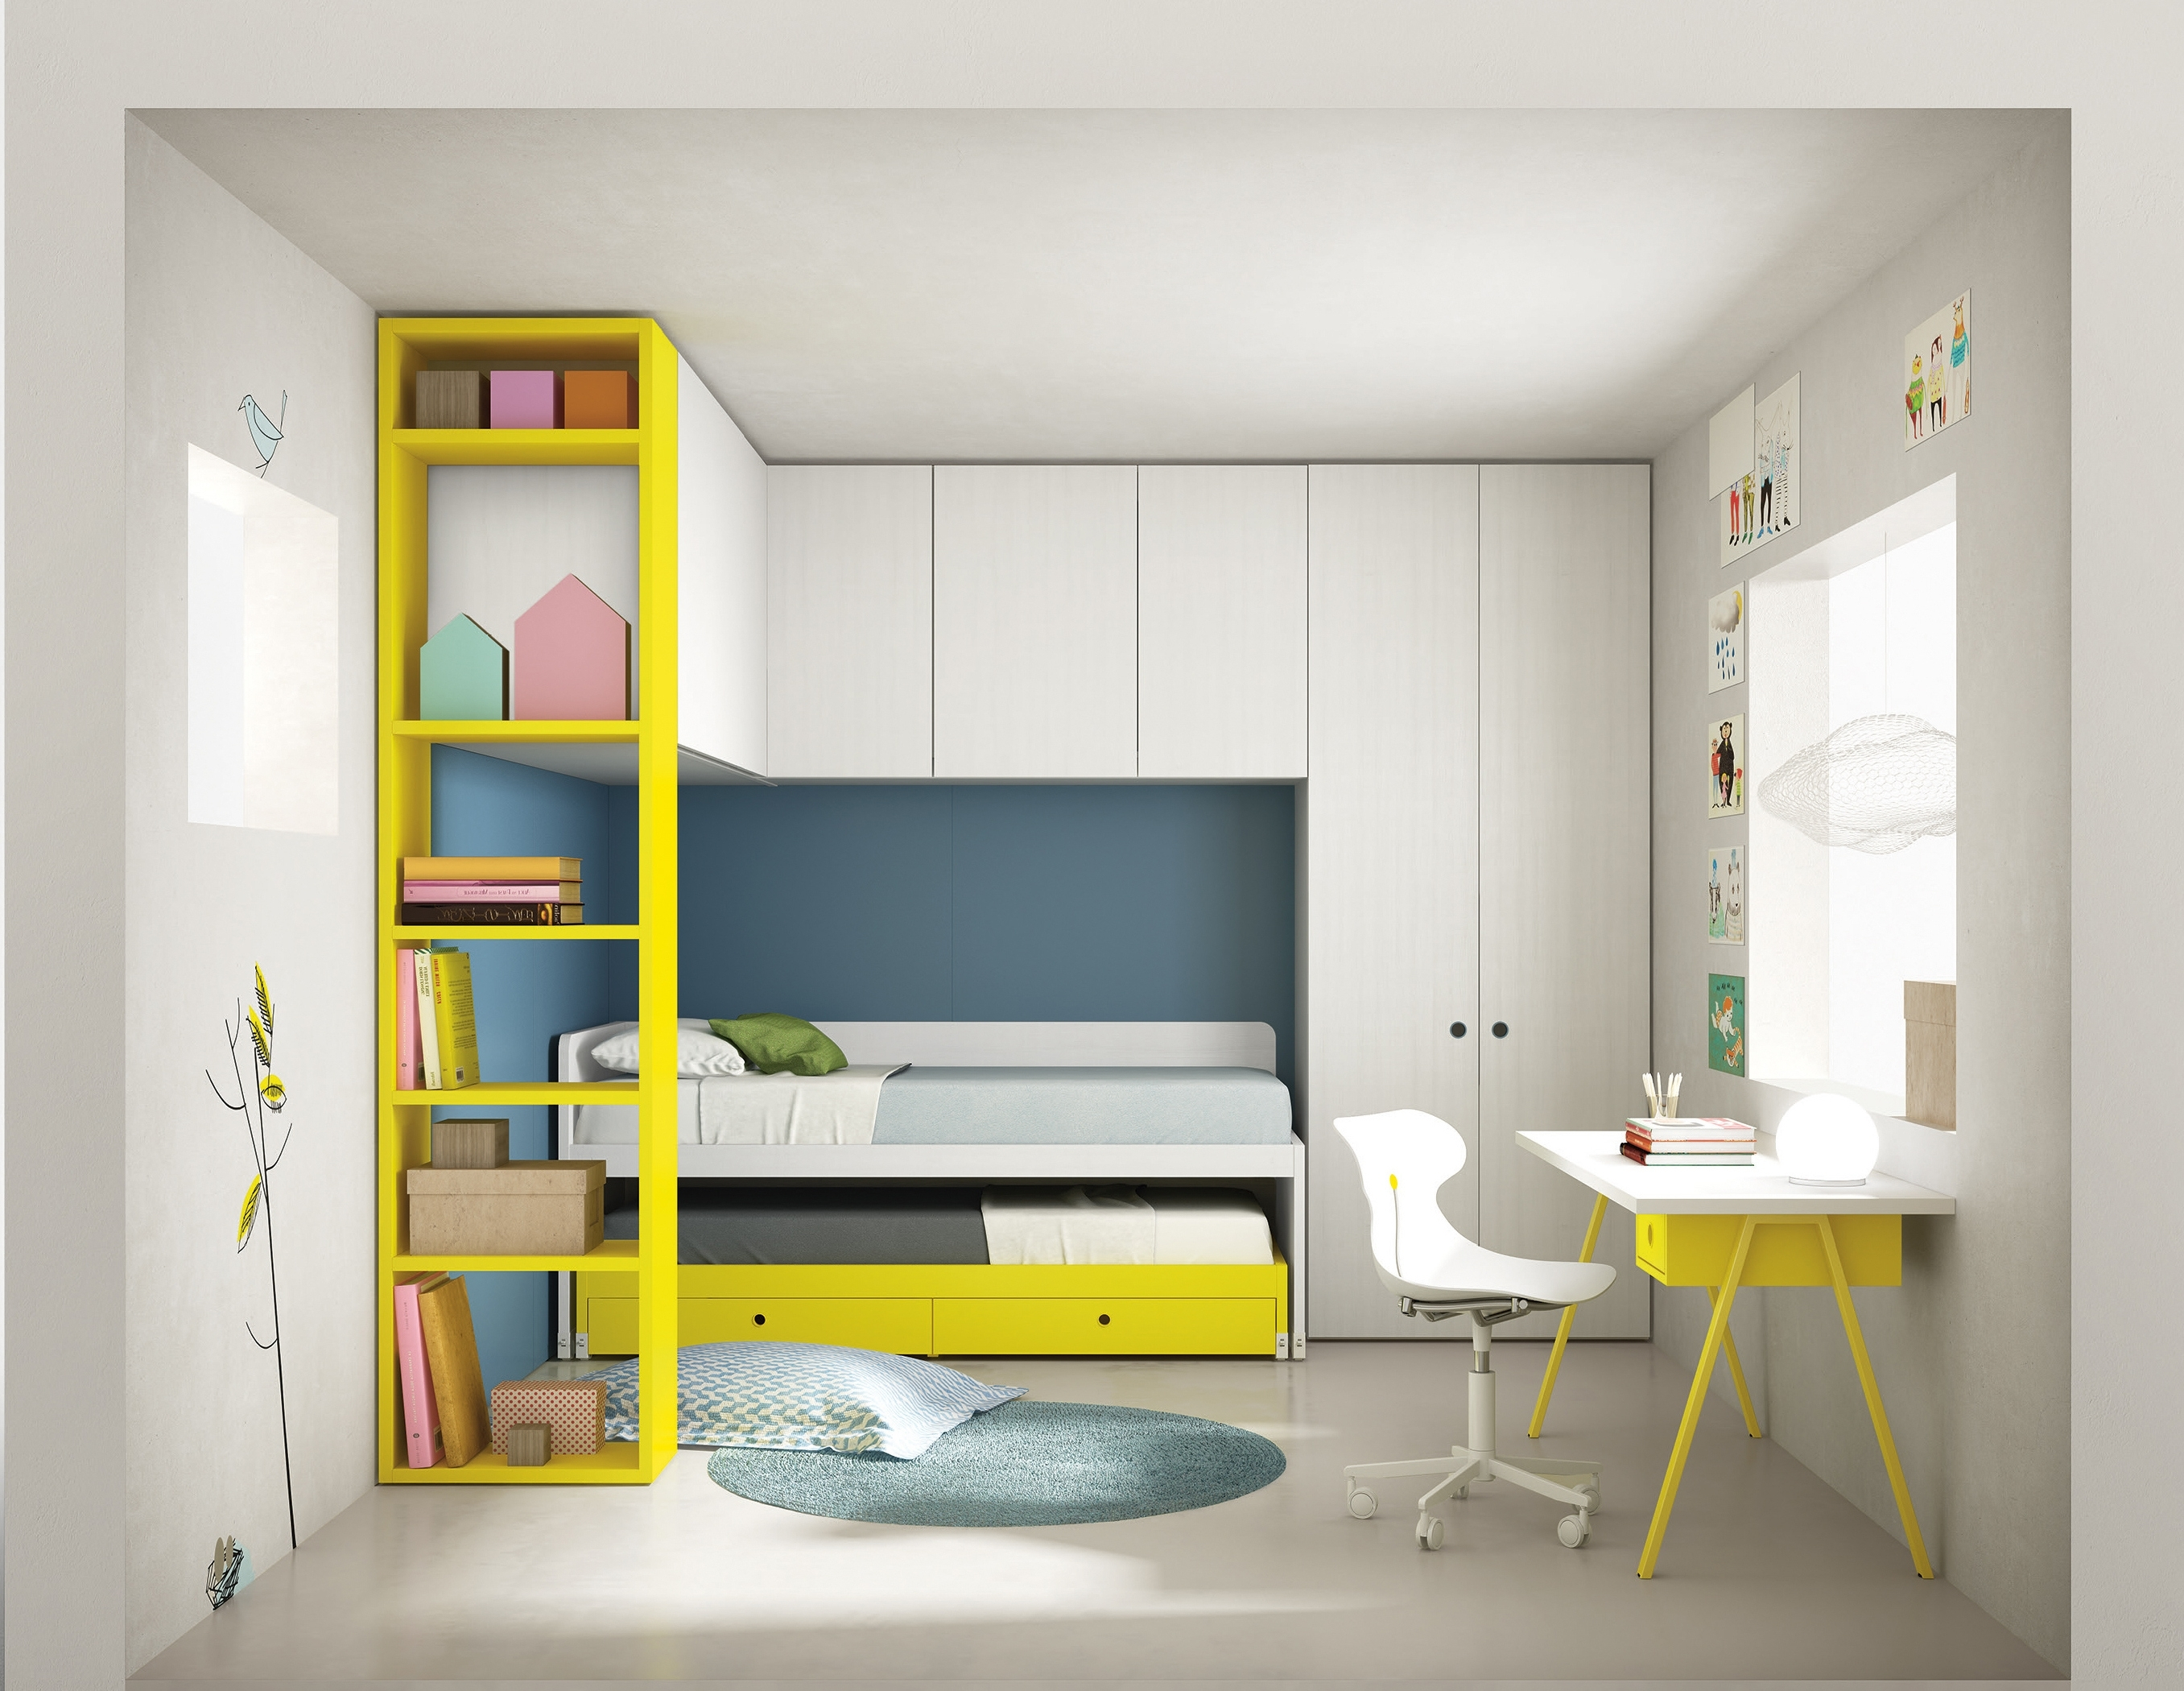 The New Nidi Range Of Children's Bedroom Furniture – Great Storage With Regard To Well Liked Childrens Bedroom Wardrobes (View 11 of 15)